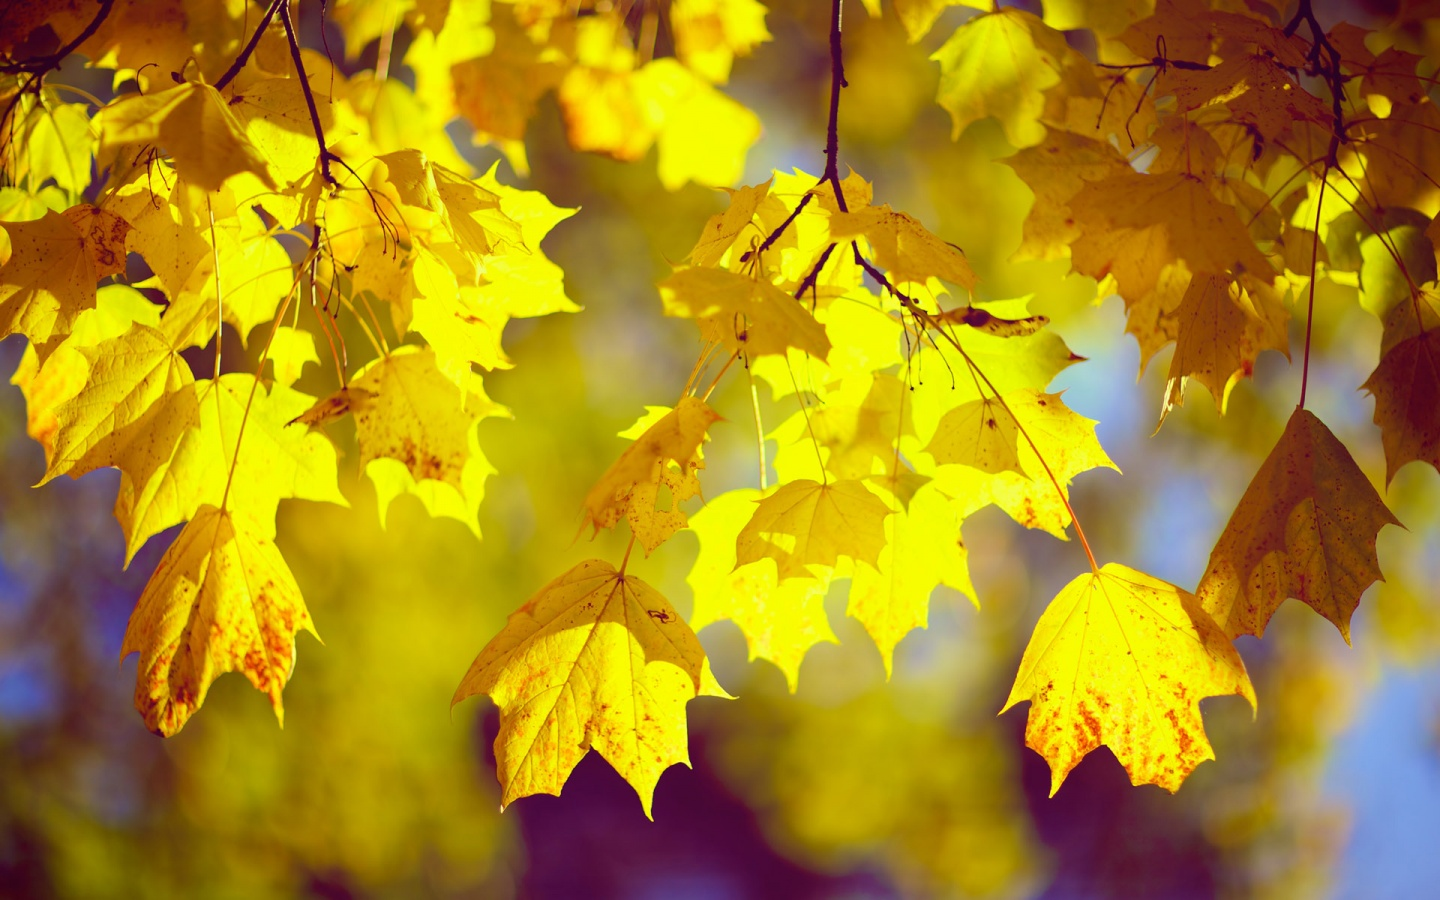 Fall leaves 1440x900 wallpaper download page 376411 1440x900